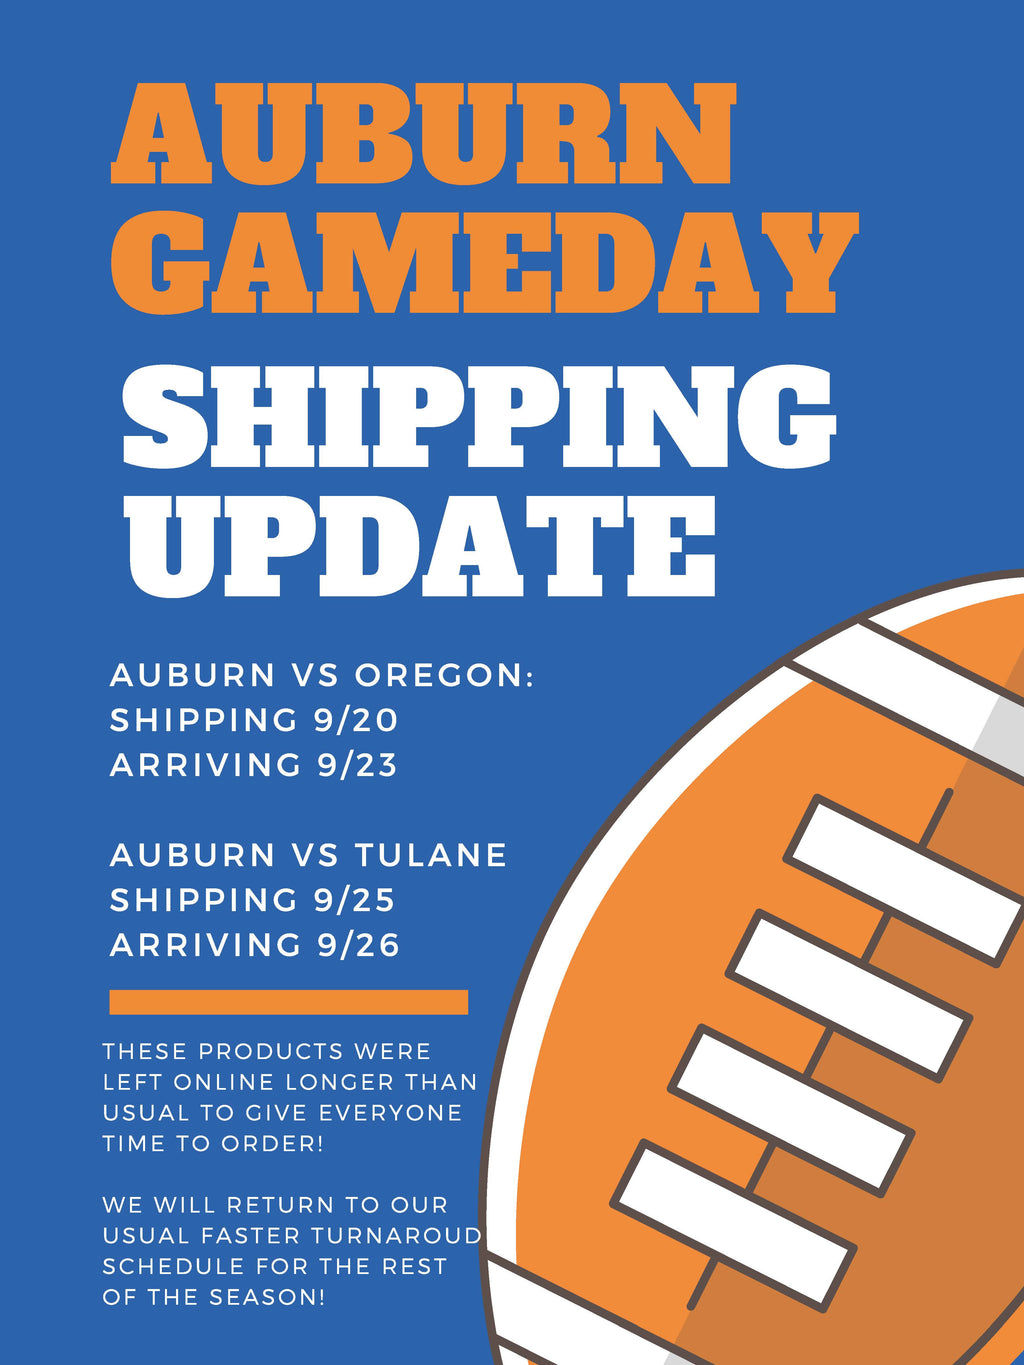 Auburn Gameday Shipping Schedule